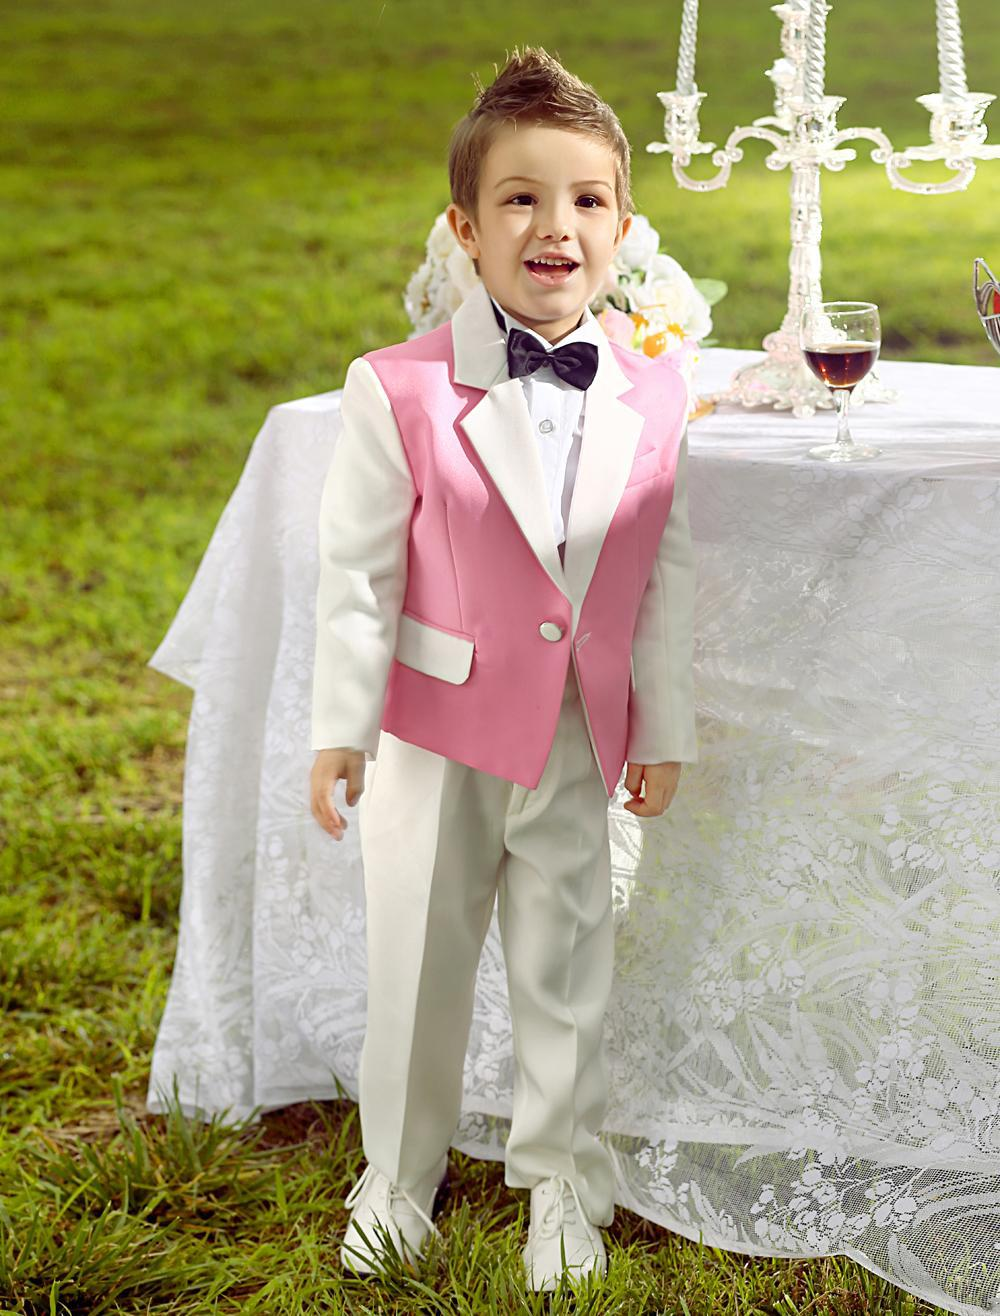 White Ring Bearer Suit | Wedding Tips and Inspiration